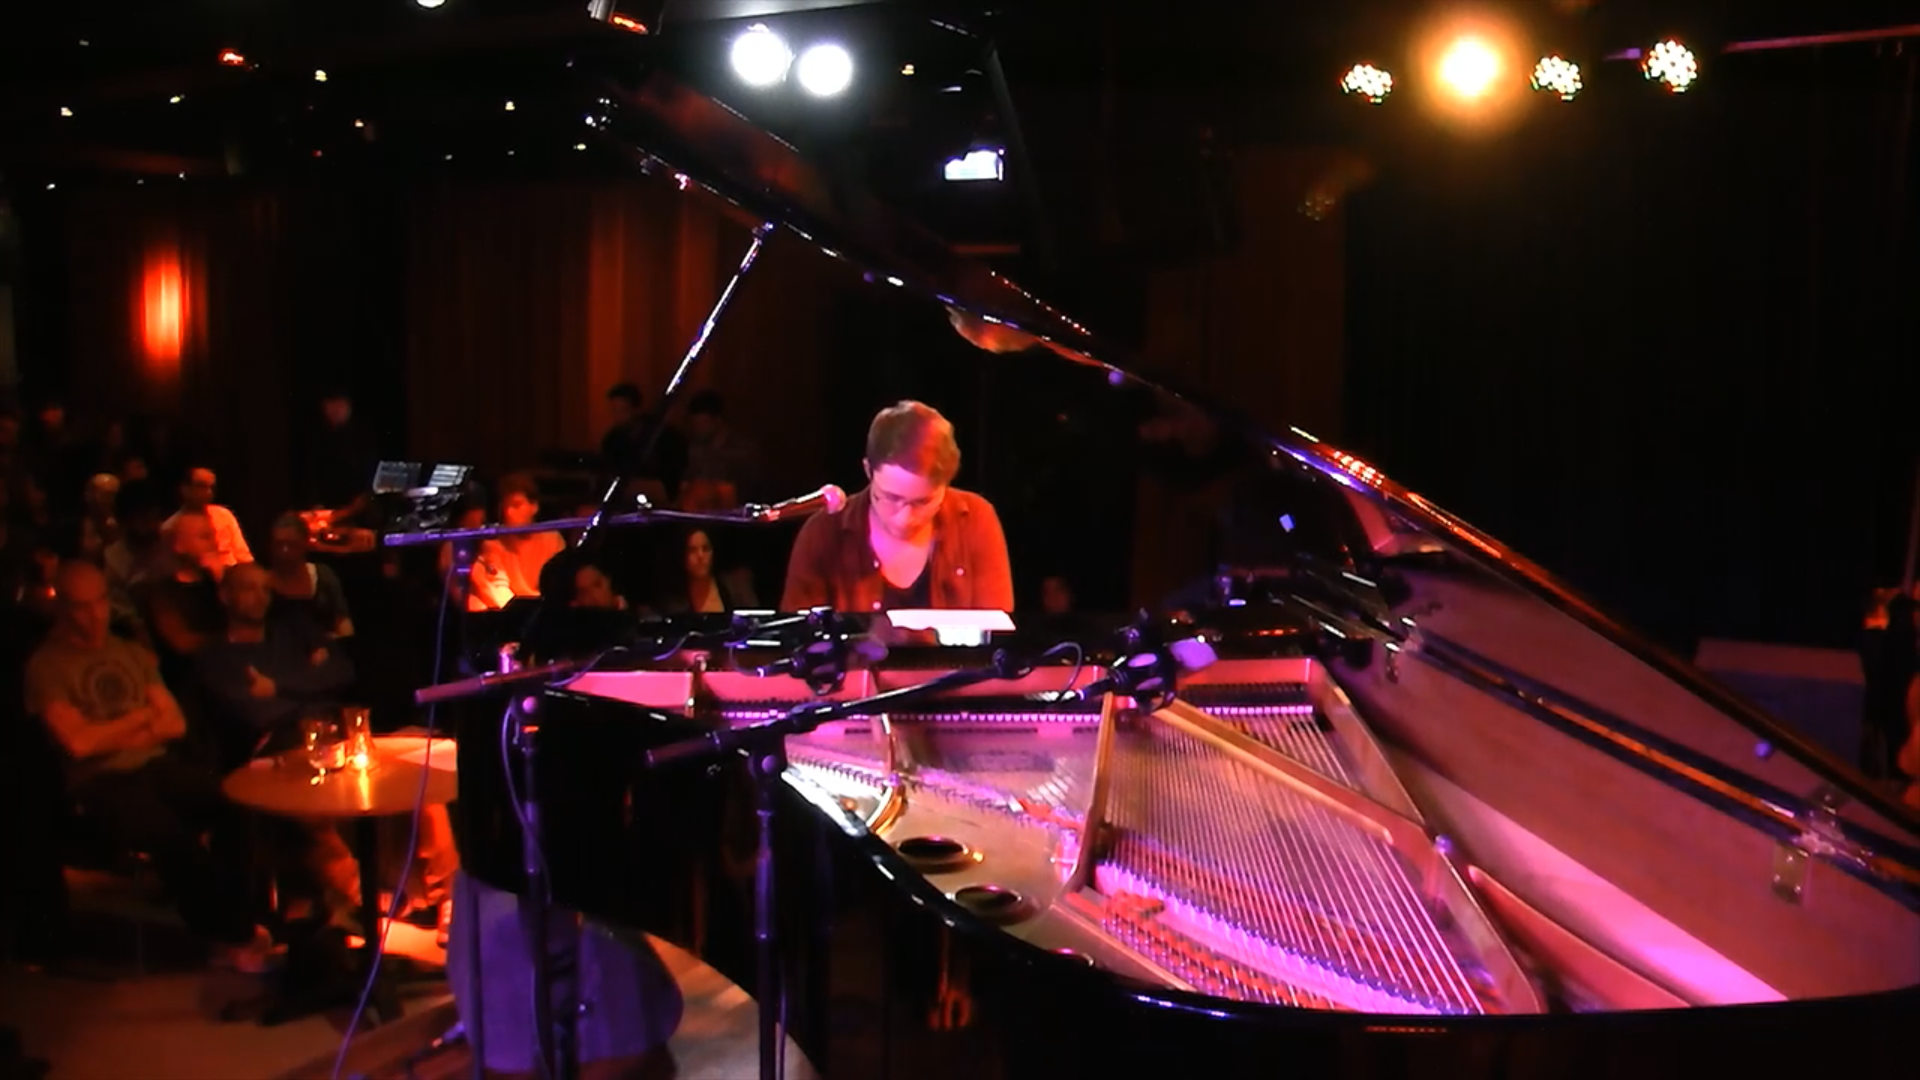 Sven Weisemann Piano Concert at North Sea Jazz Club in Amsterdam – 2012